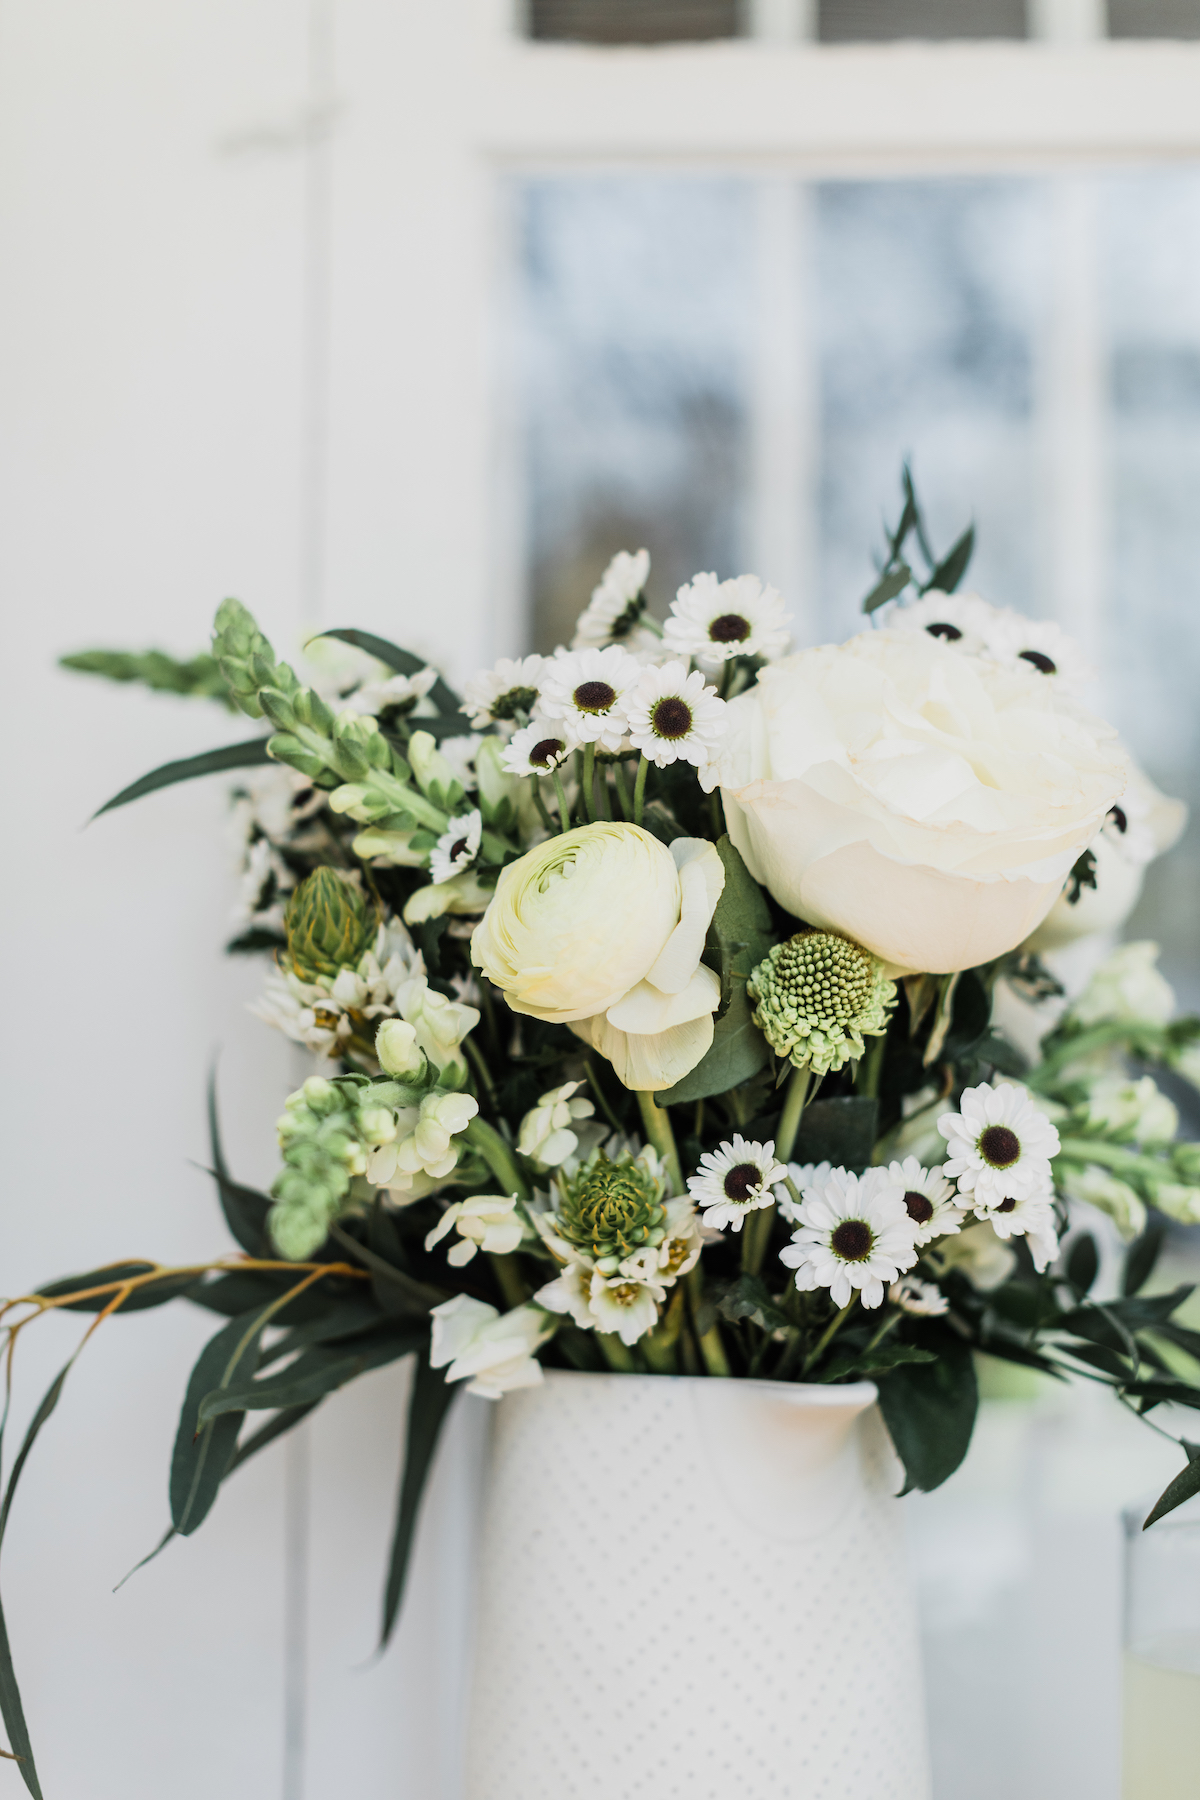 Bouquet of White Flowers